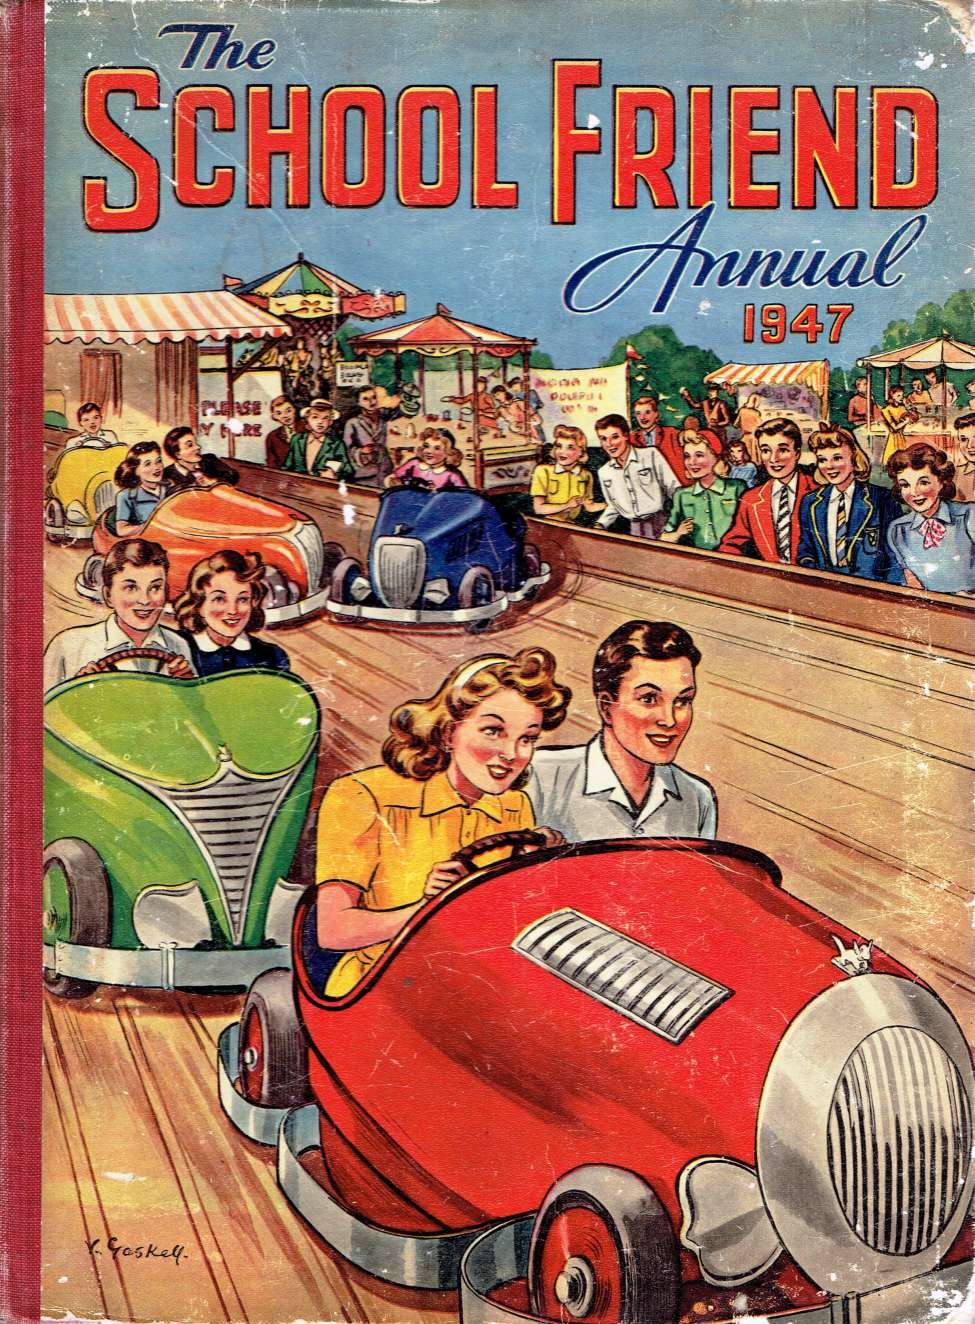 Comic Book Cover For The School Friend Annual 1947 (2 of 2)